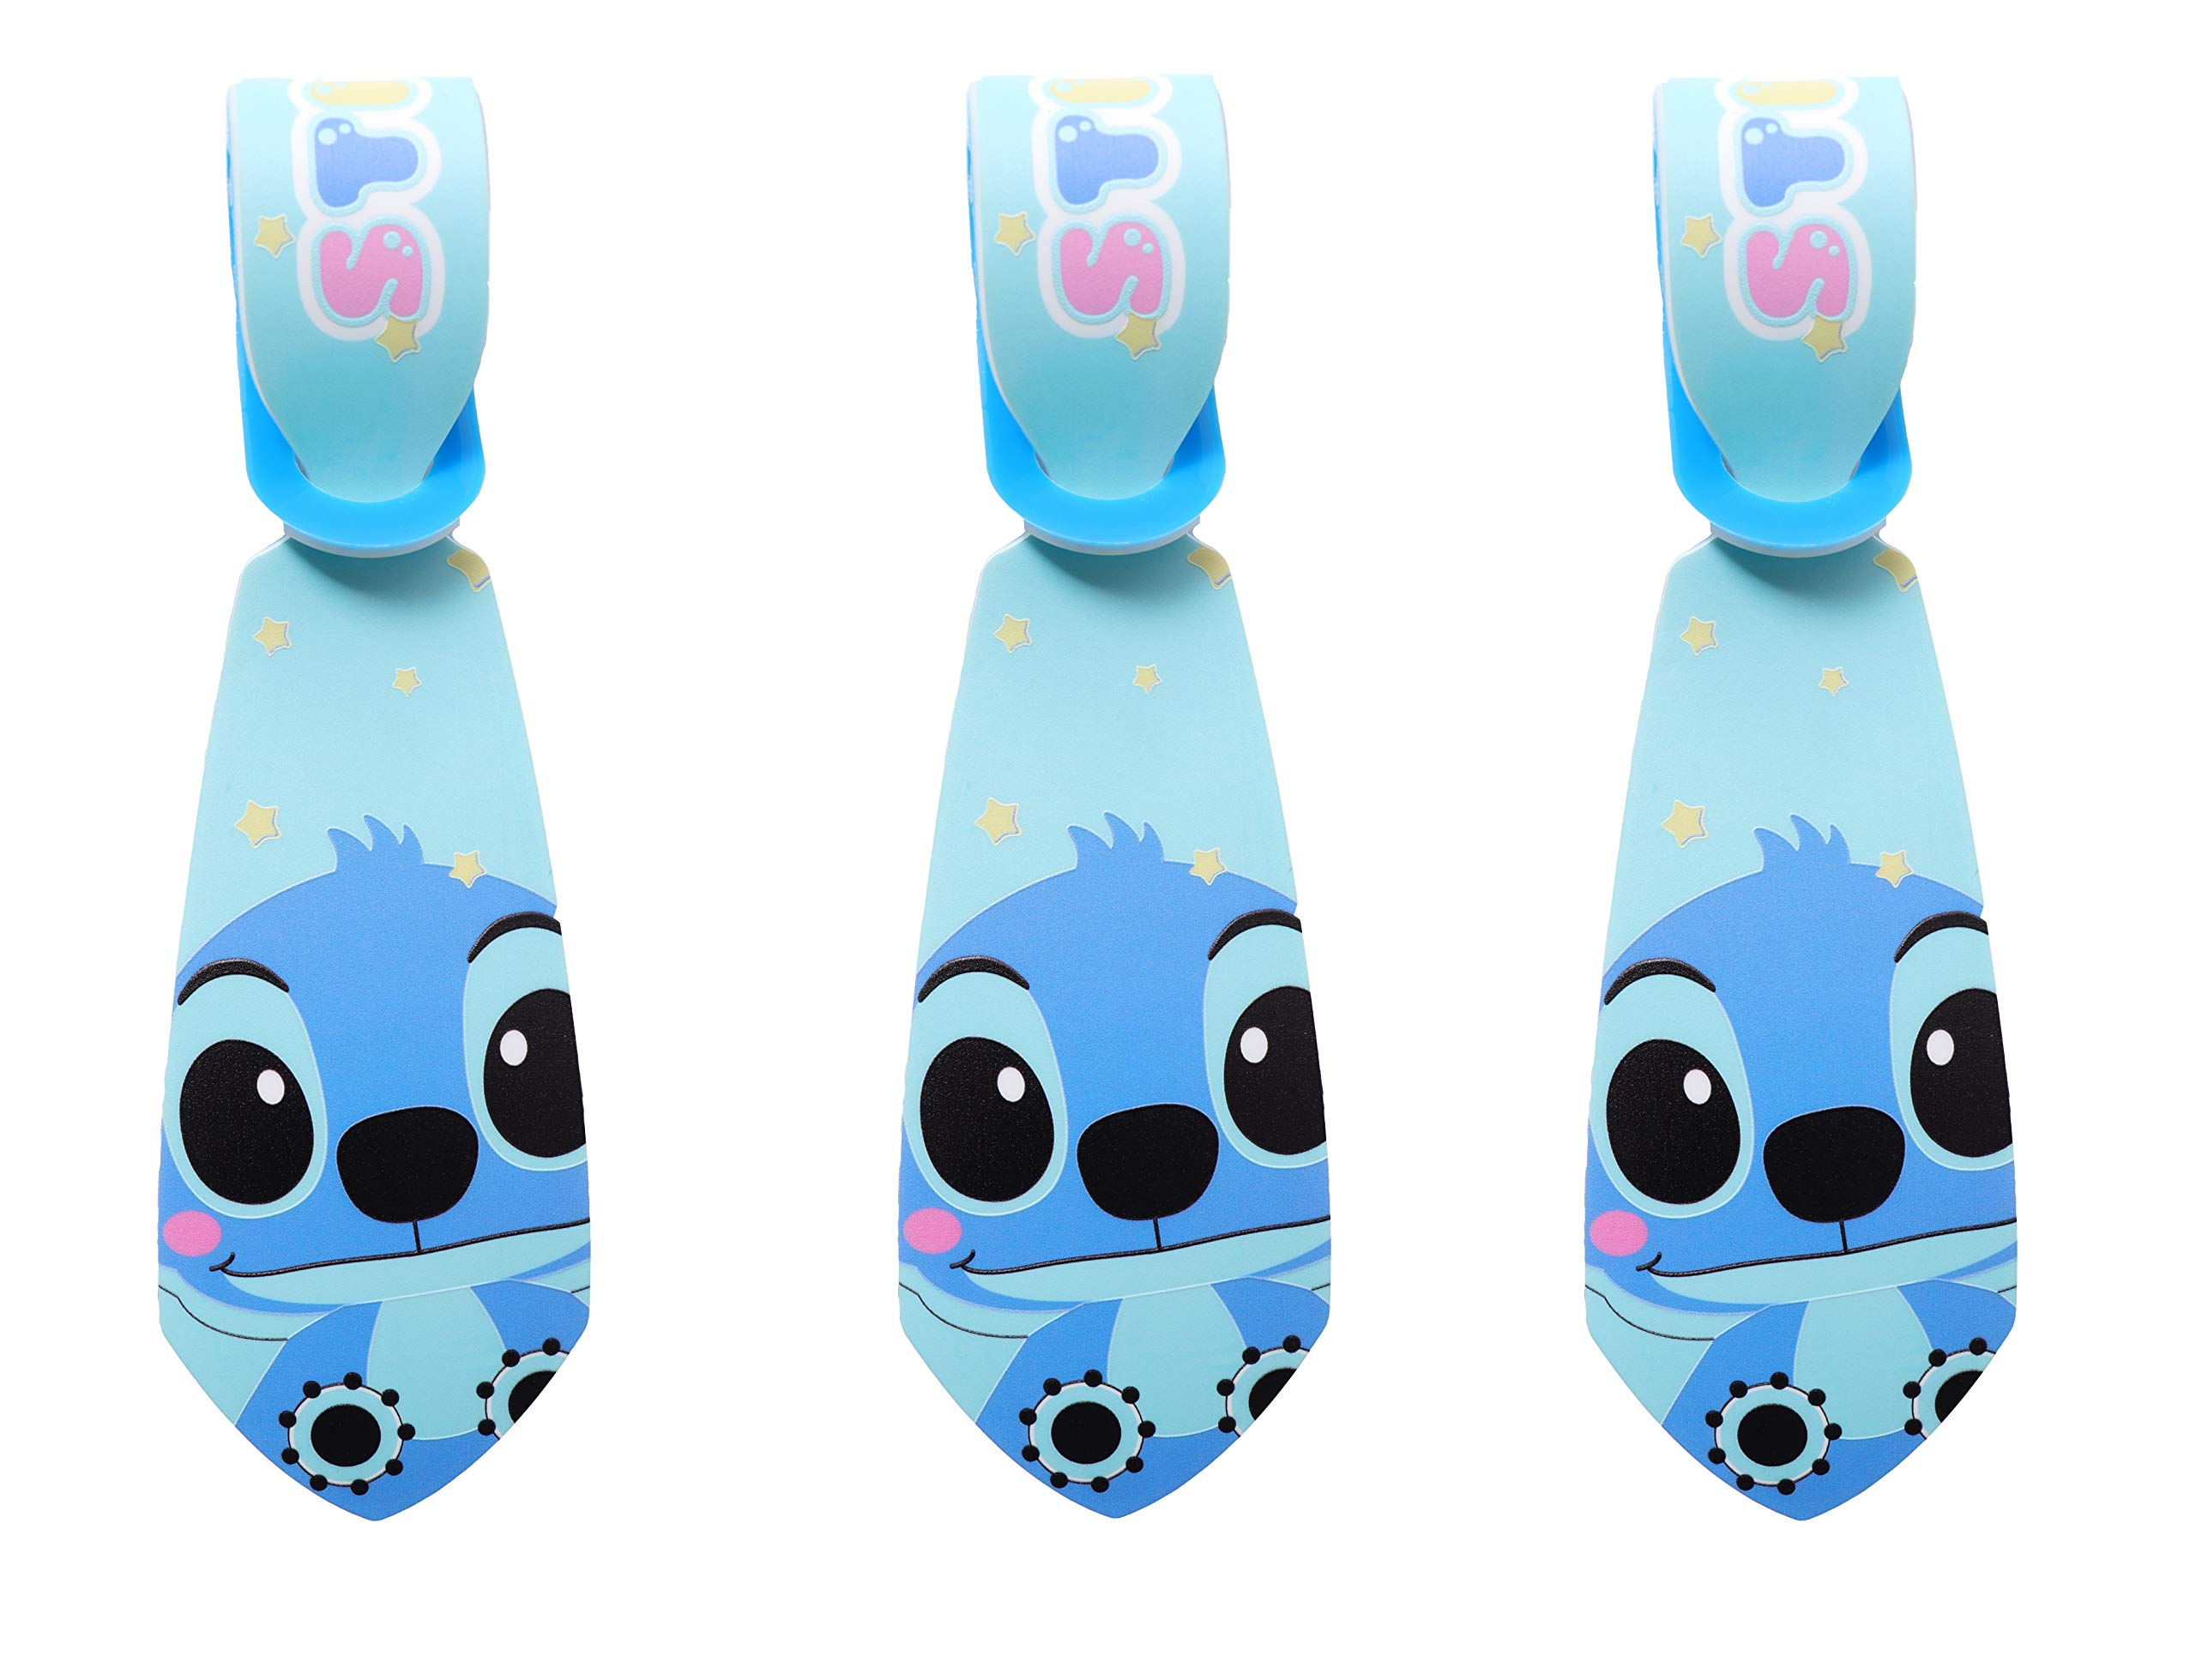 Super Cute Kawaii Cartoon Silicone Travel Luggage ID Tag Tie for Bags (3 Stitch Luggage Tie) by AG Toys